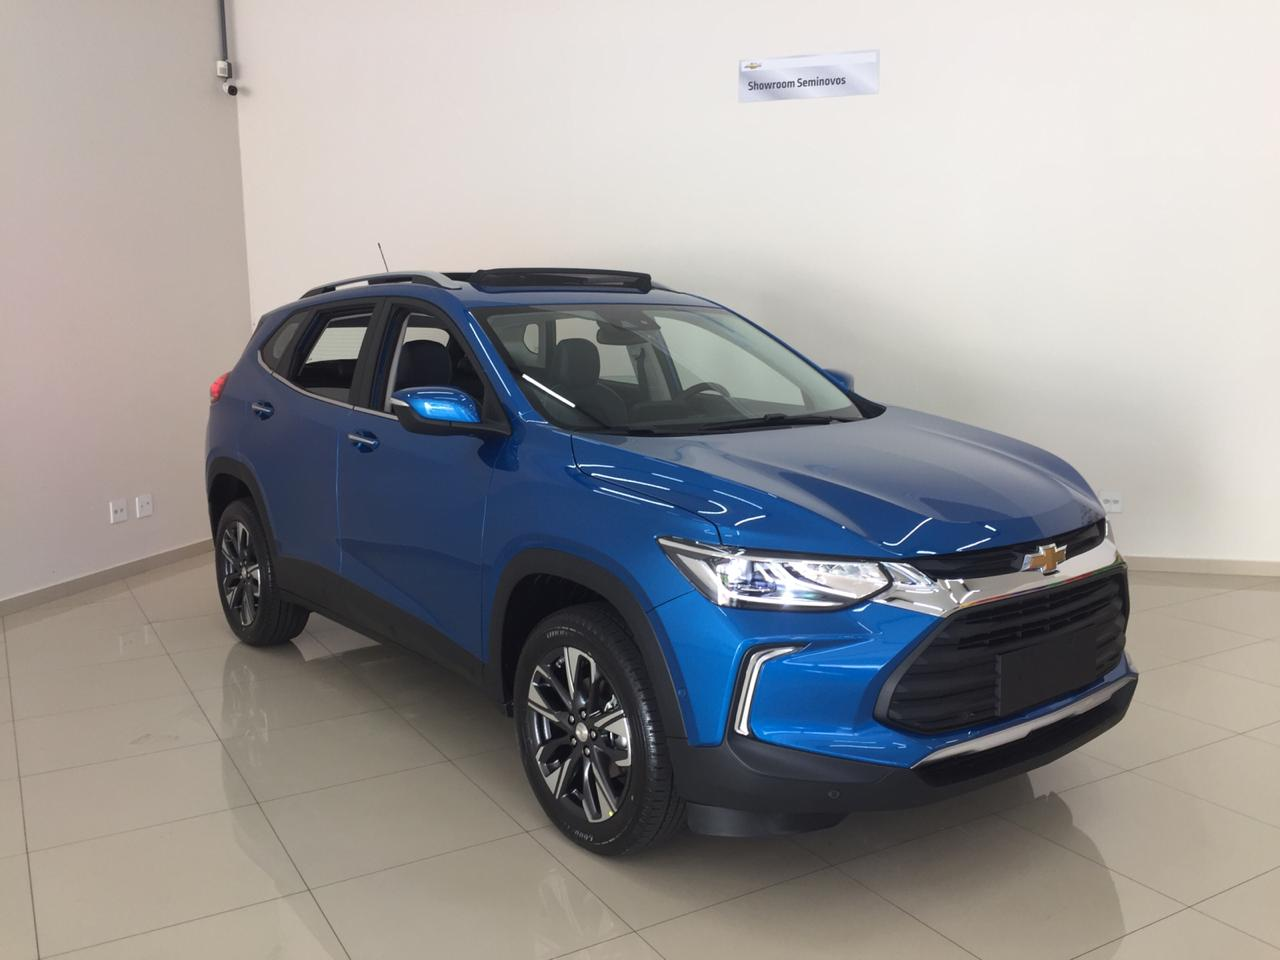 CHEVROLET TRACKER PREMIER 1.2 TURBO 2021